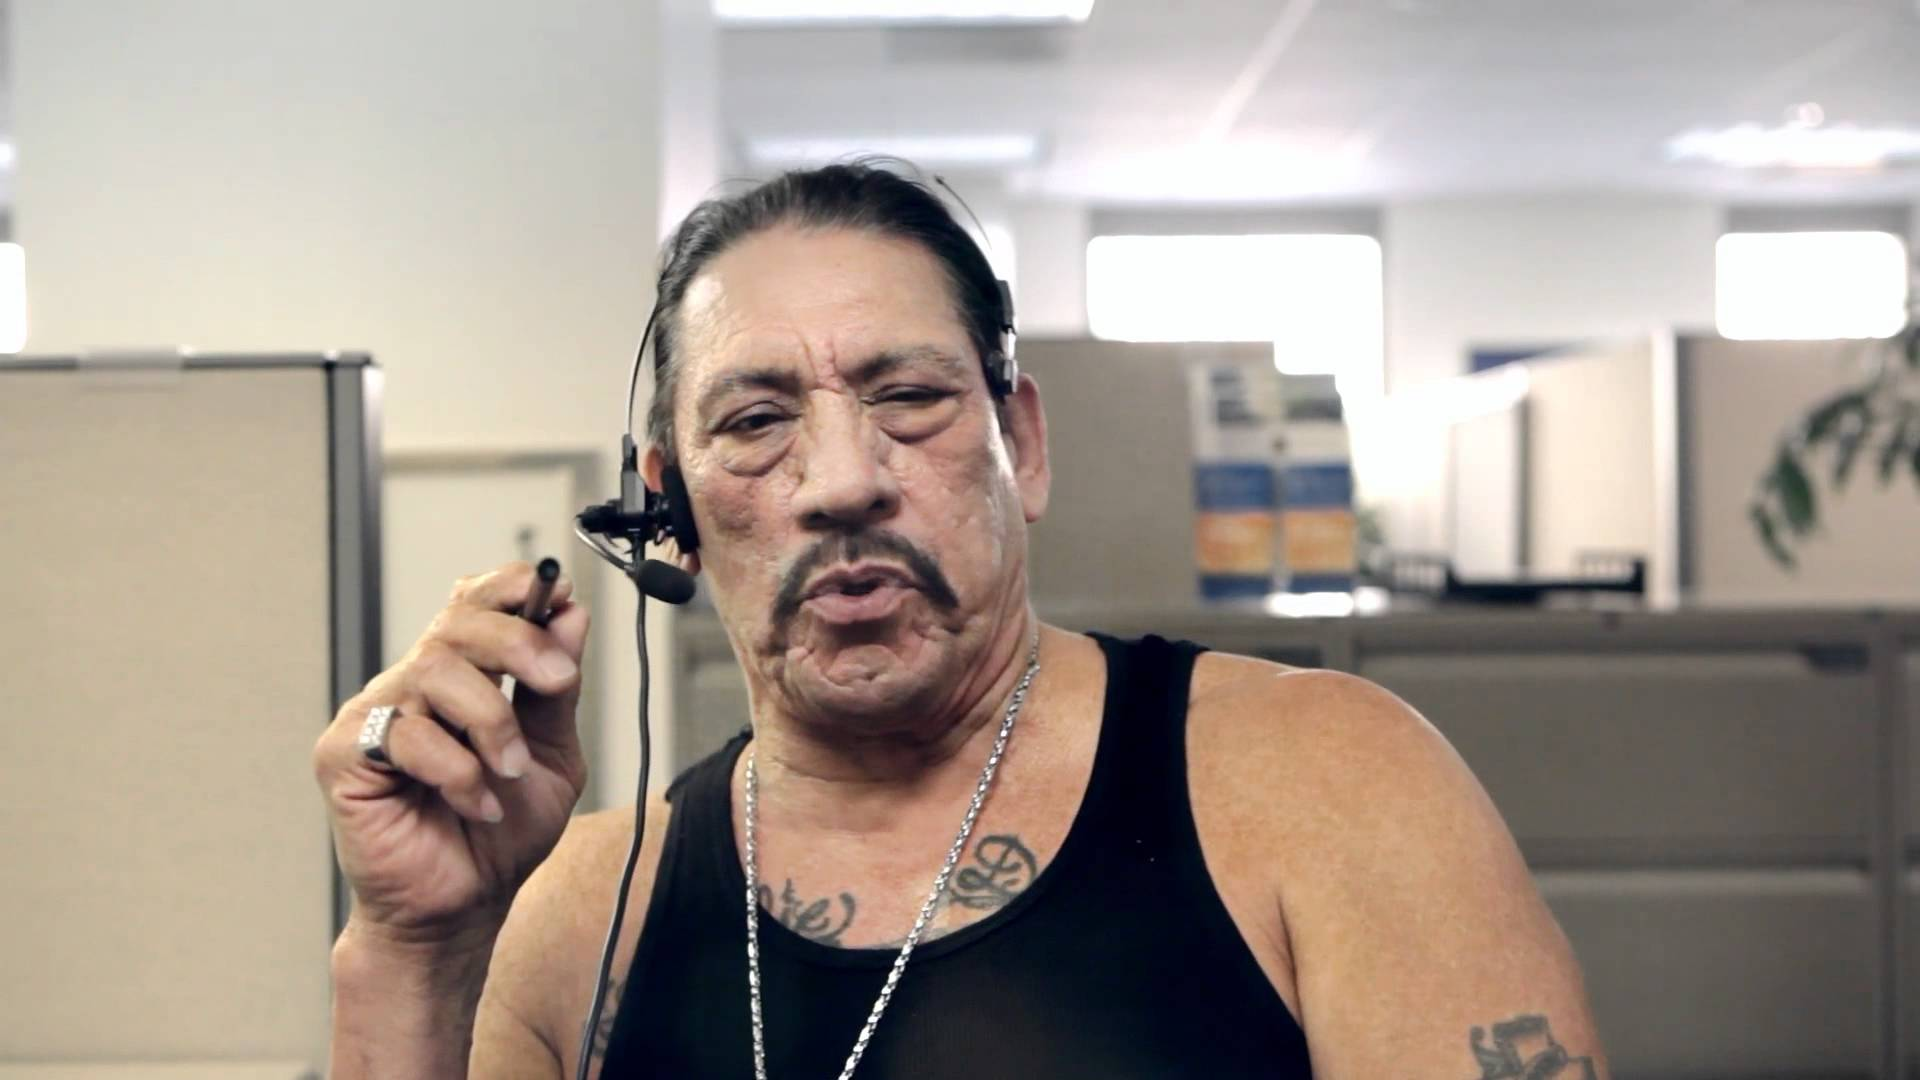 Danny Trejo Wallpapers hd